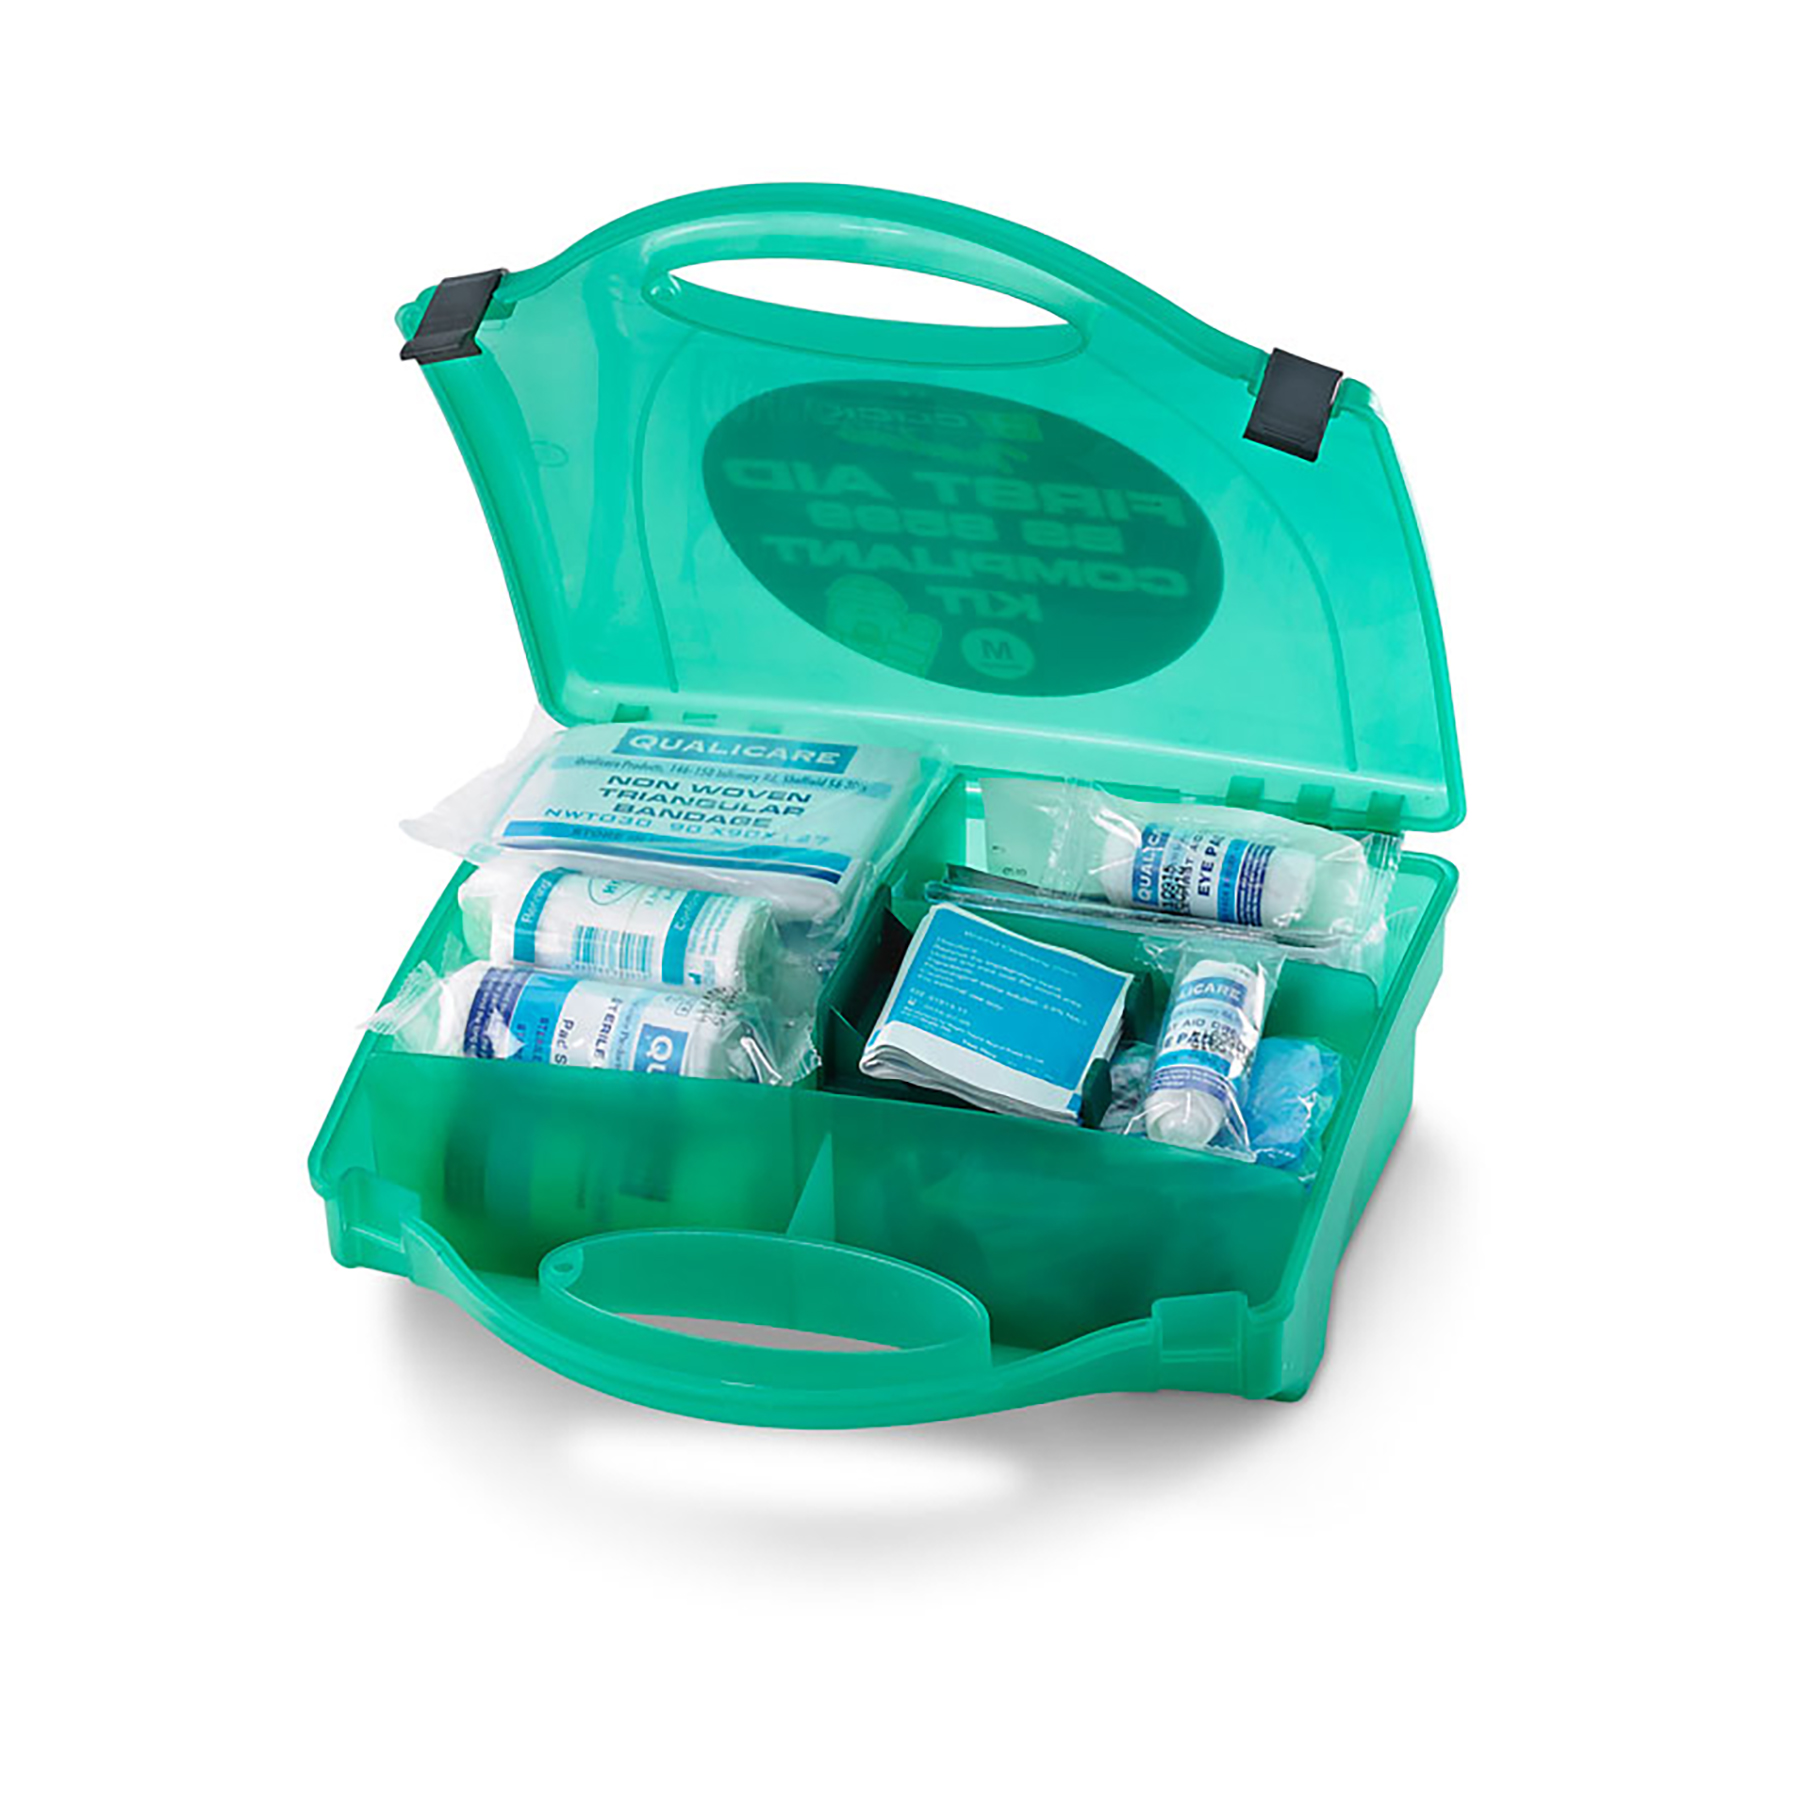 5 Star Facilities First Aid Kit BSI 1-20 Person